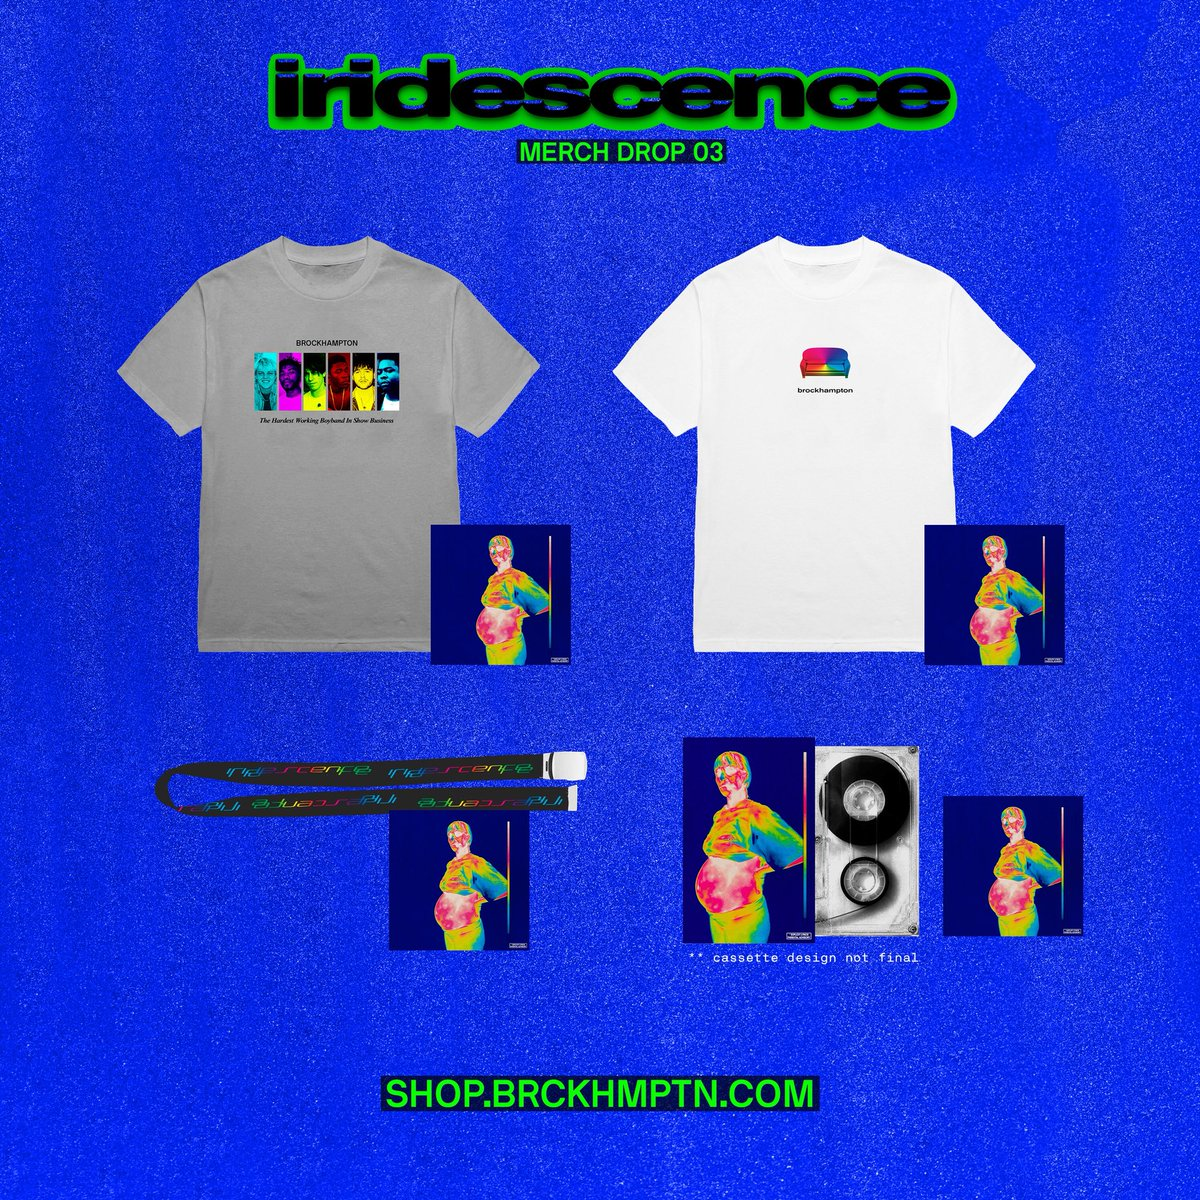 Brockhampton On Twitter Merch Drop 03 Https T Co Hw7qorrgze #brockhampton #brockhampton merch #also shoutout to the people that followed me #nice to. brockhampton on twitter merch drop 03